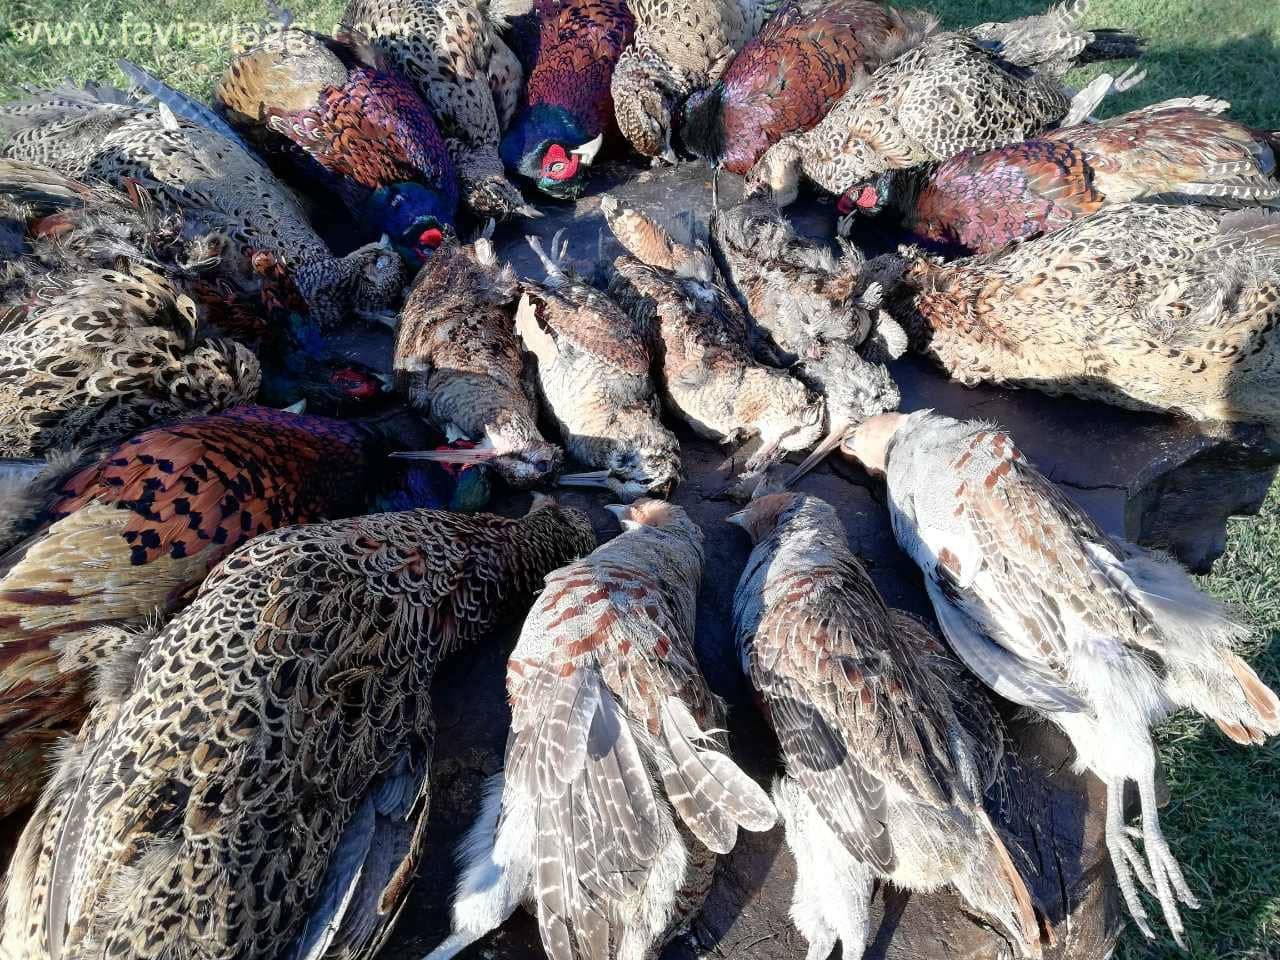 Woodcock Hunting in Bulgaria